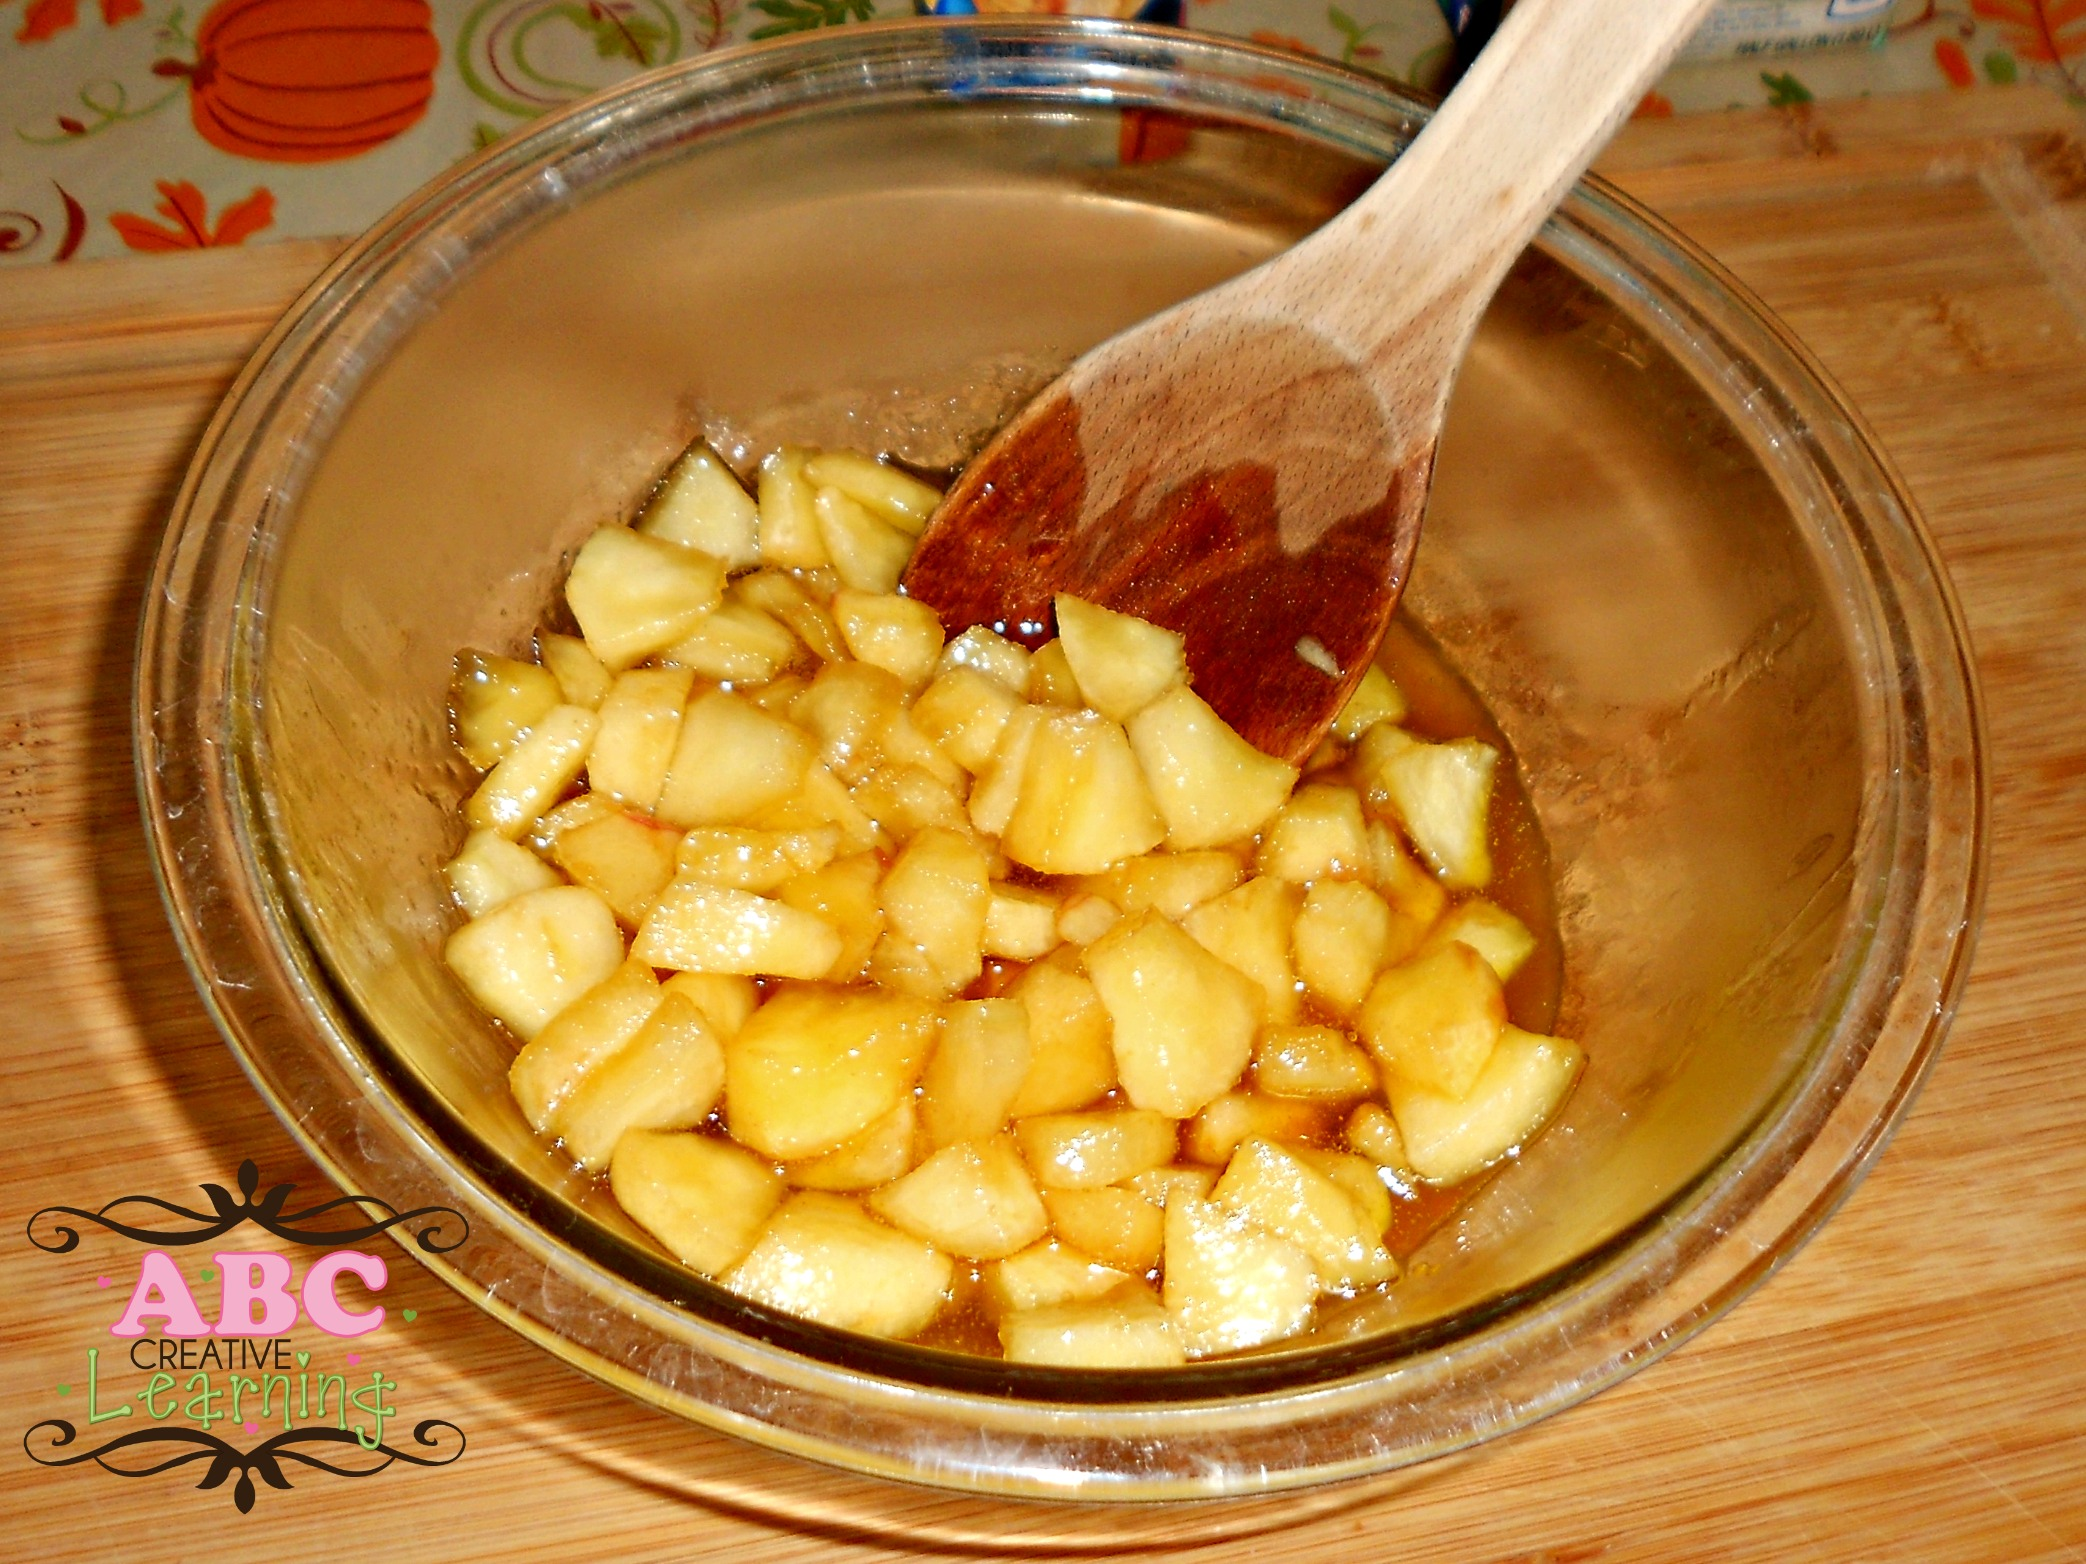 Cooling Apple Mix